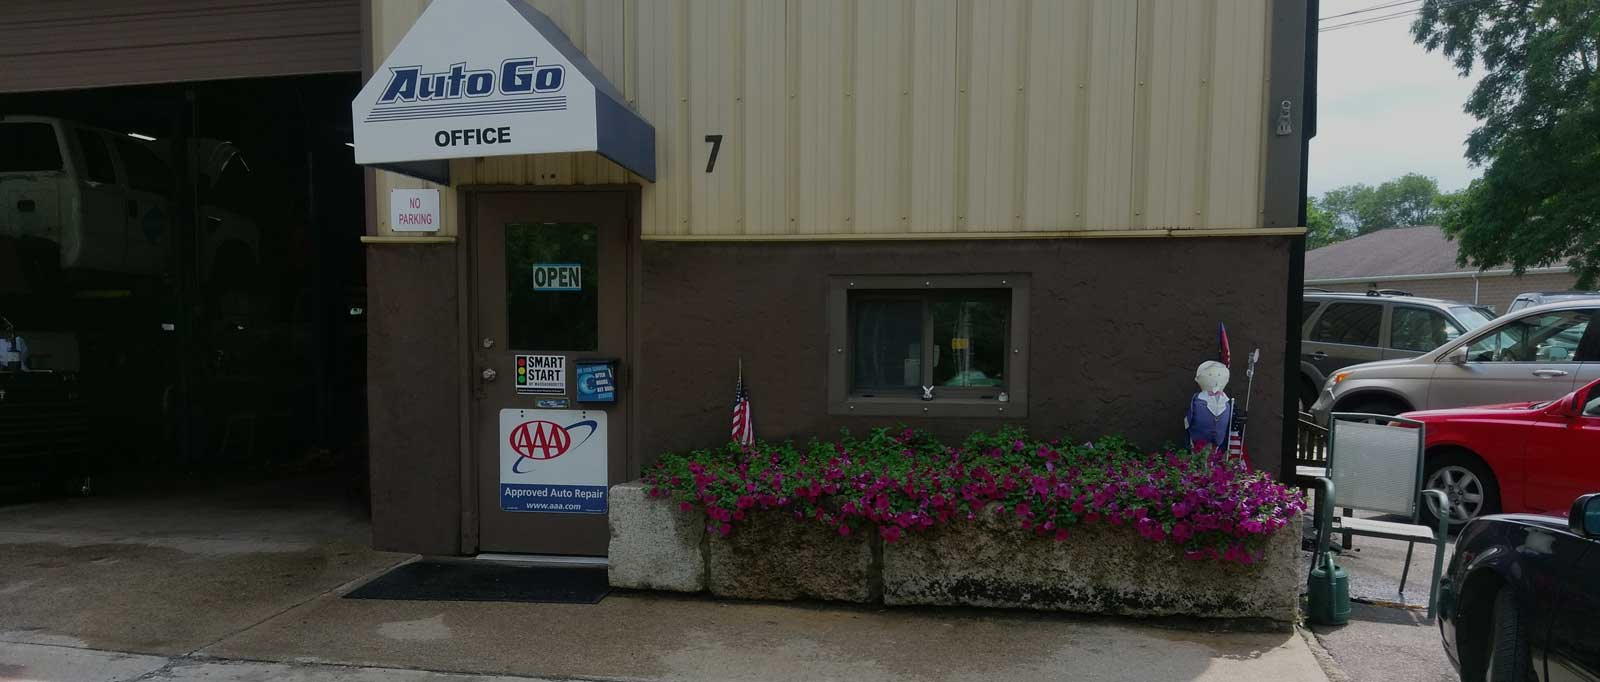 Auto Go - Truck Repair in Milford, MA